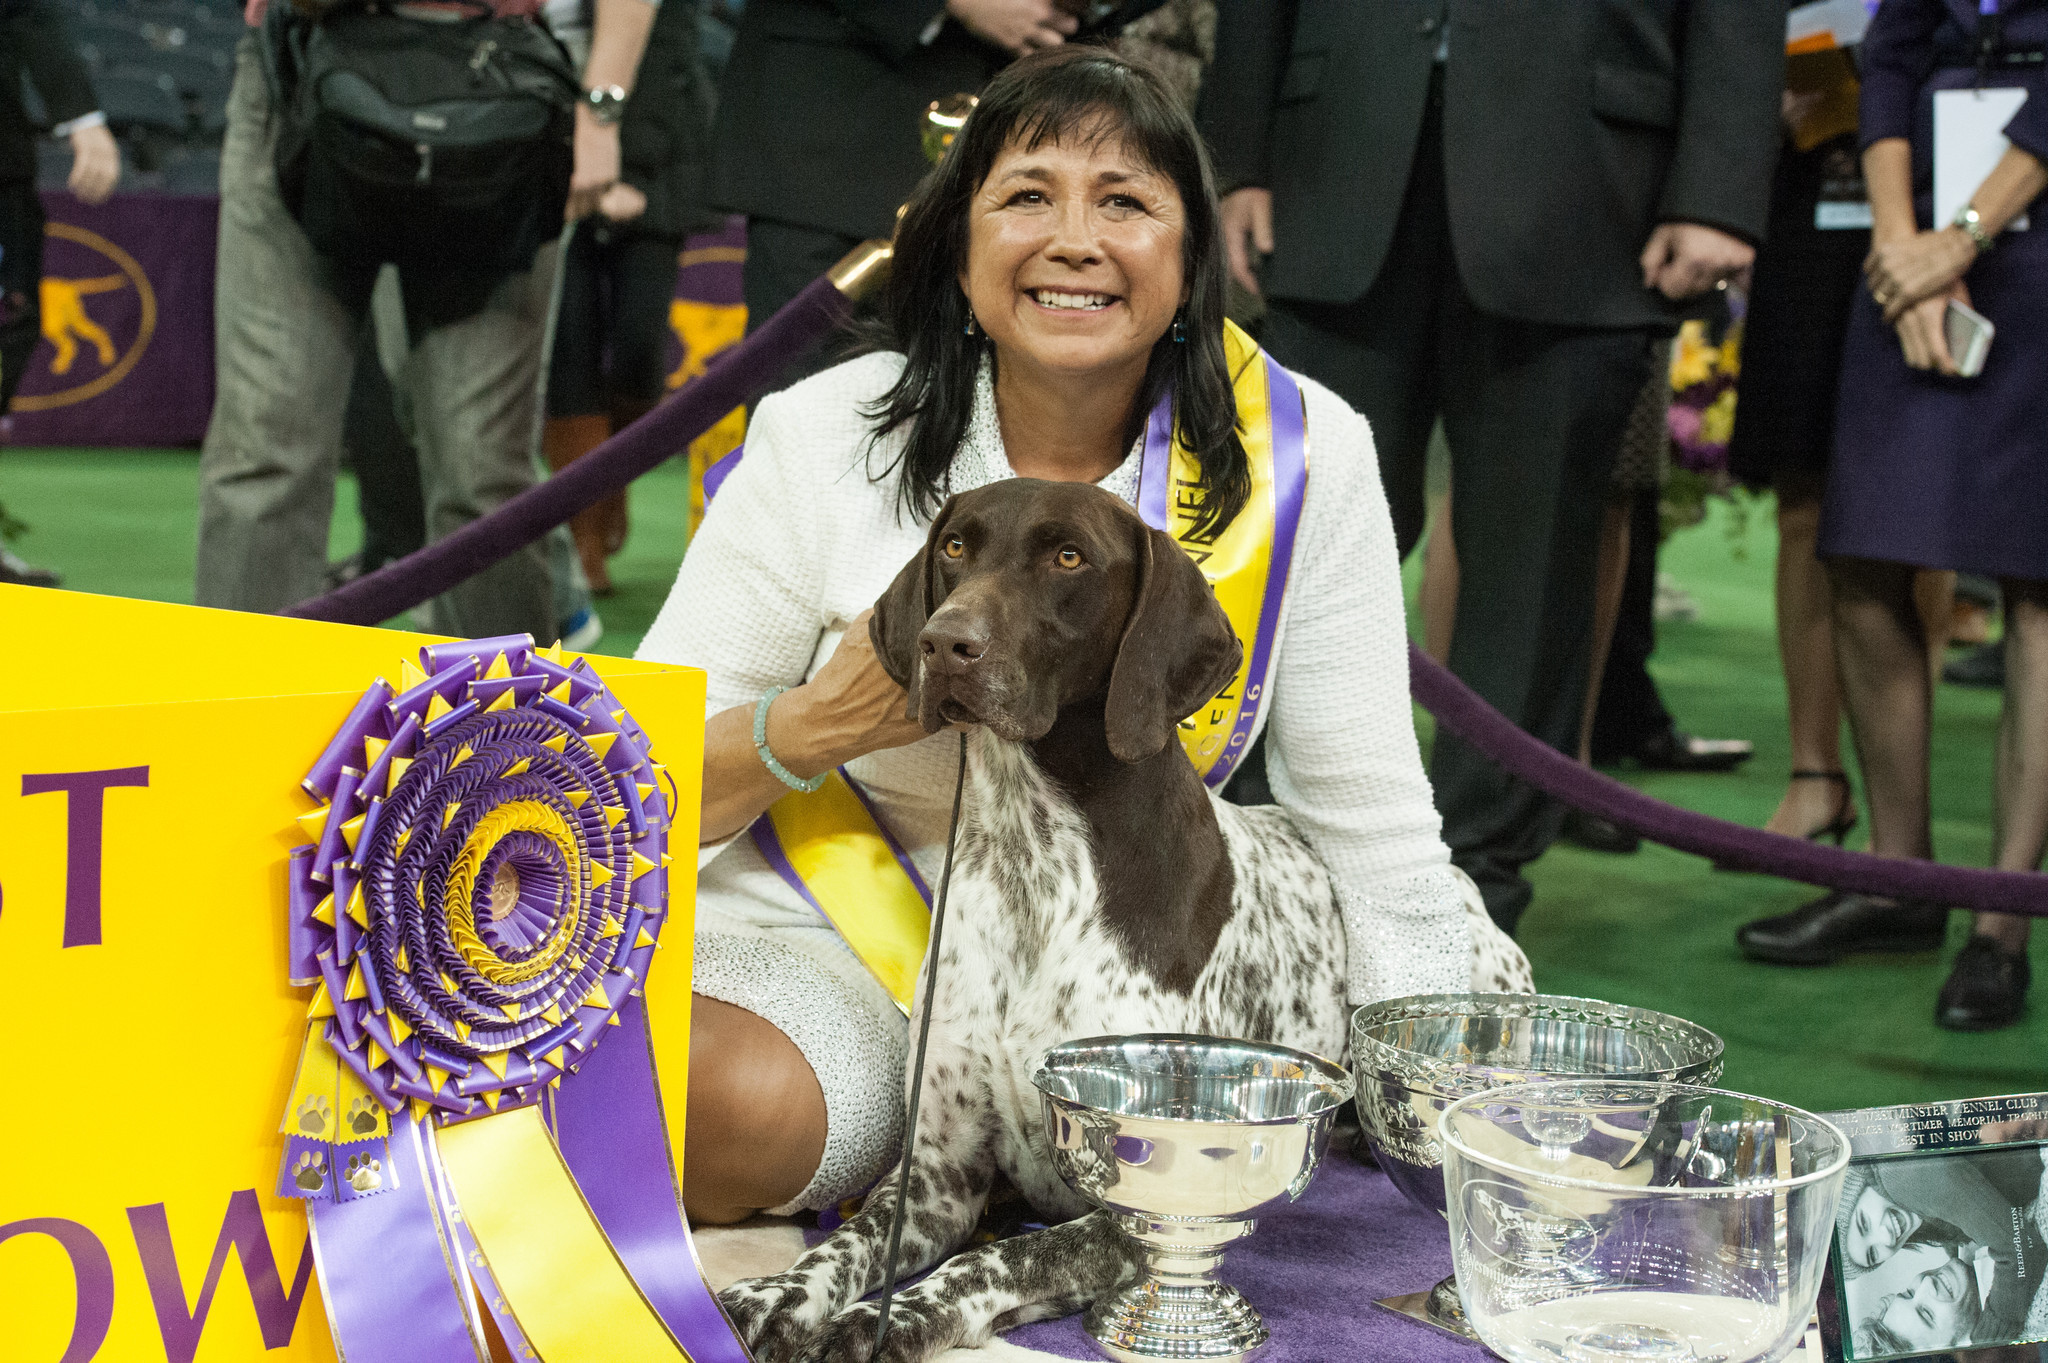 Cj The German Shorthaired Pointer Wins Best In Show At Westminster Chicago Tribune